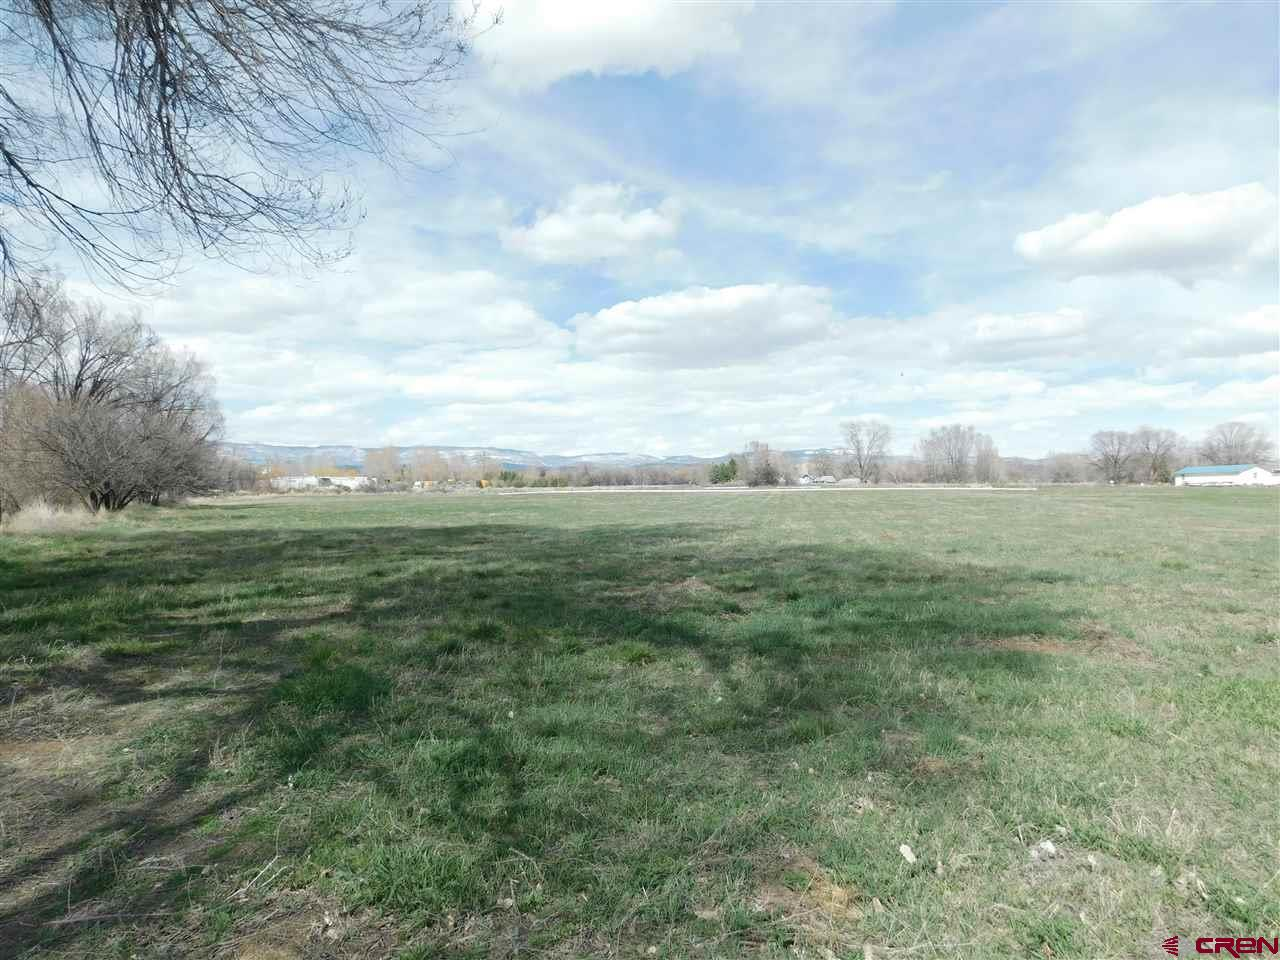 Wonderful opportunity for country living on this 6.31 acre parcel. Great Grand Mesa views. 7 Shares of Orchard City Irrigation District and 6 Shares of Butte Ditch plus a paid Town of Orchard City water tap. Located on a dead end road and in great proximity to Delta, Eckert or Cedaredge. Several mature trees border the property. The topography is mostly level and cleared. Some fencing already exists. No covenants on this property. Modular homes allowed. Come make your dreams a reality!